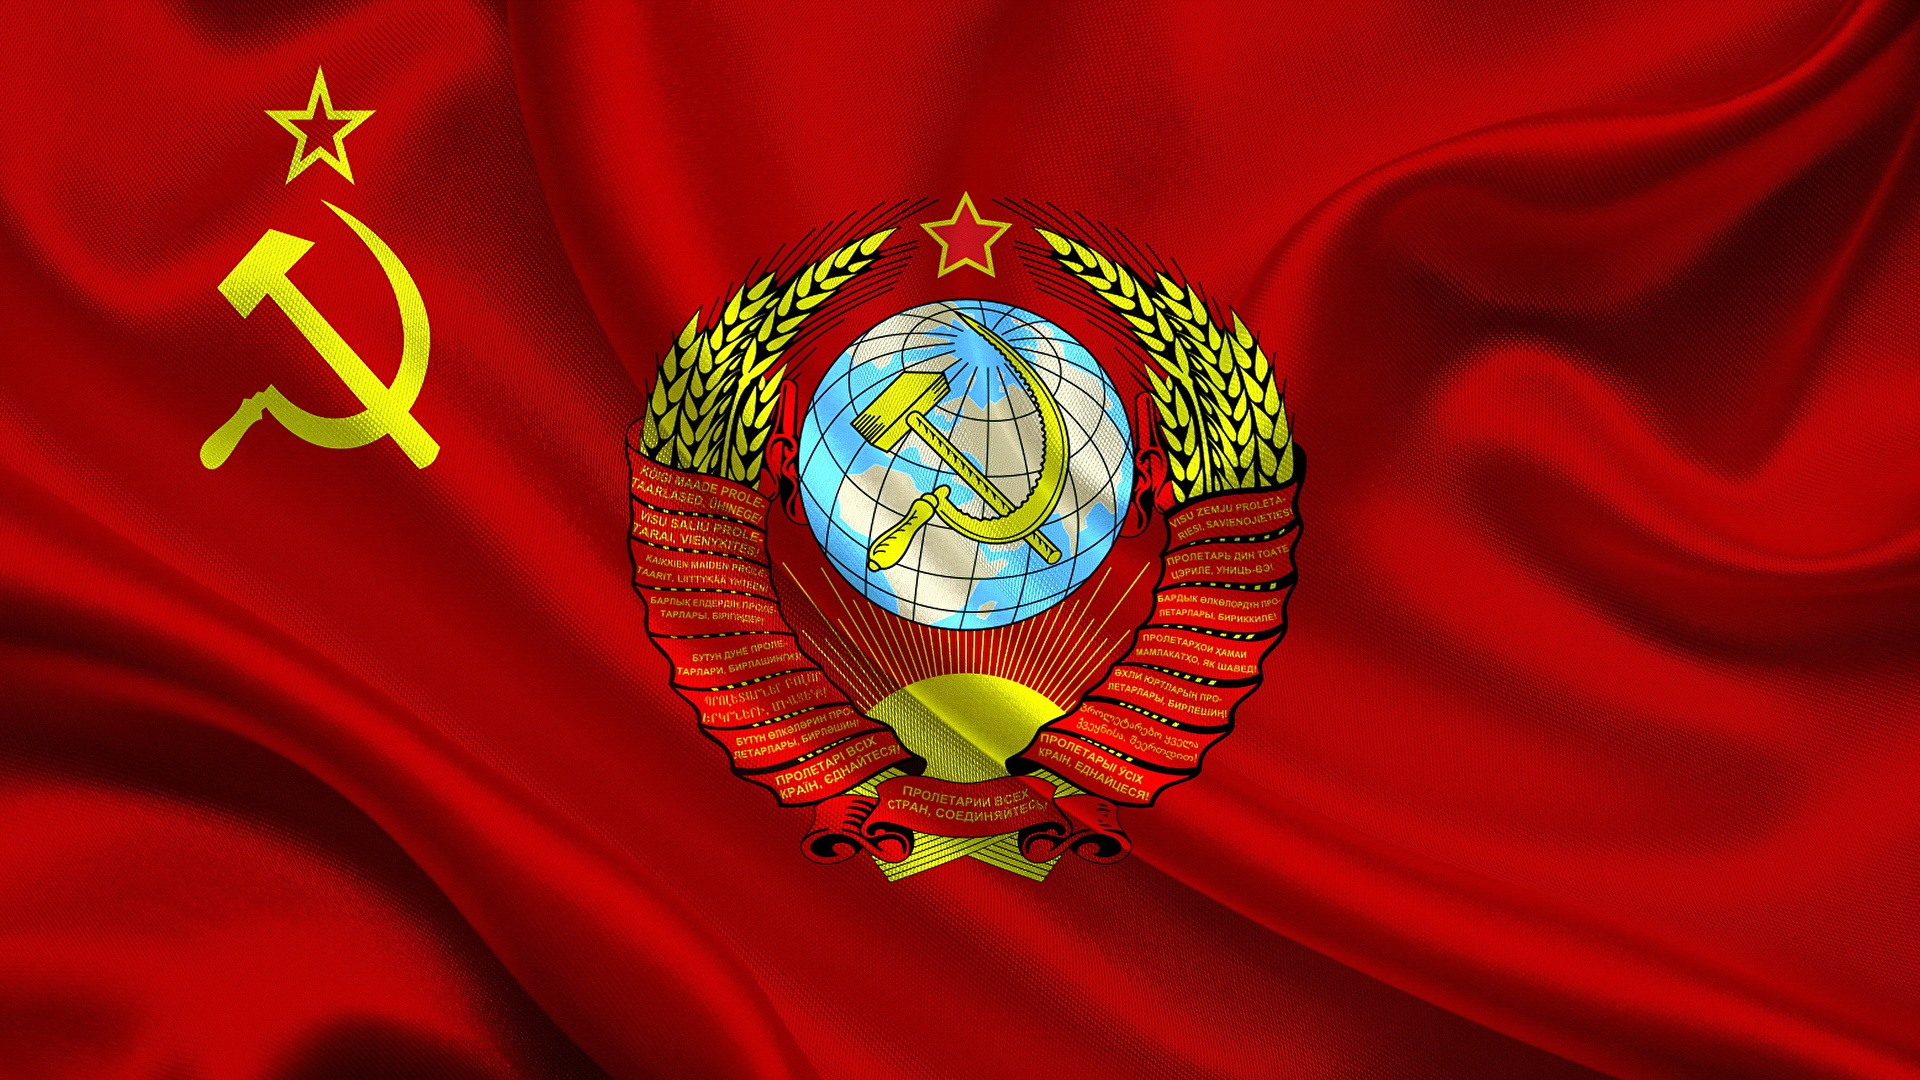 Picture Coat Of Arms Soviet Union Hammer And Sickle Flag 1920x1080